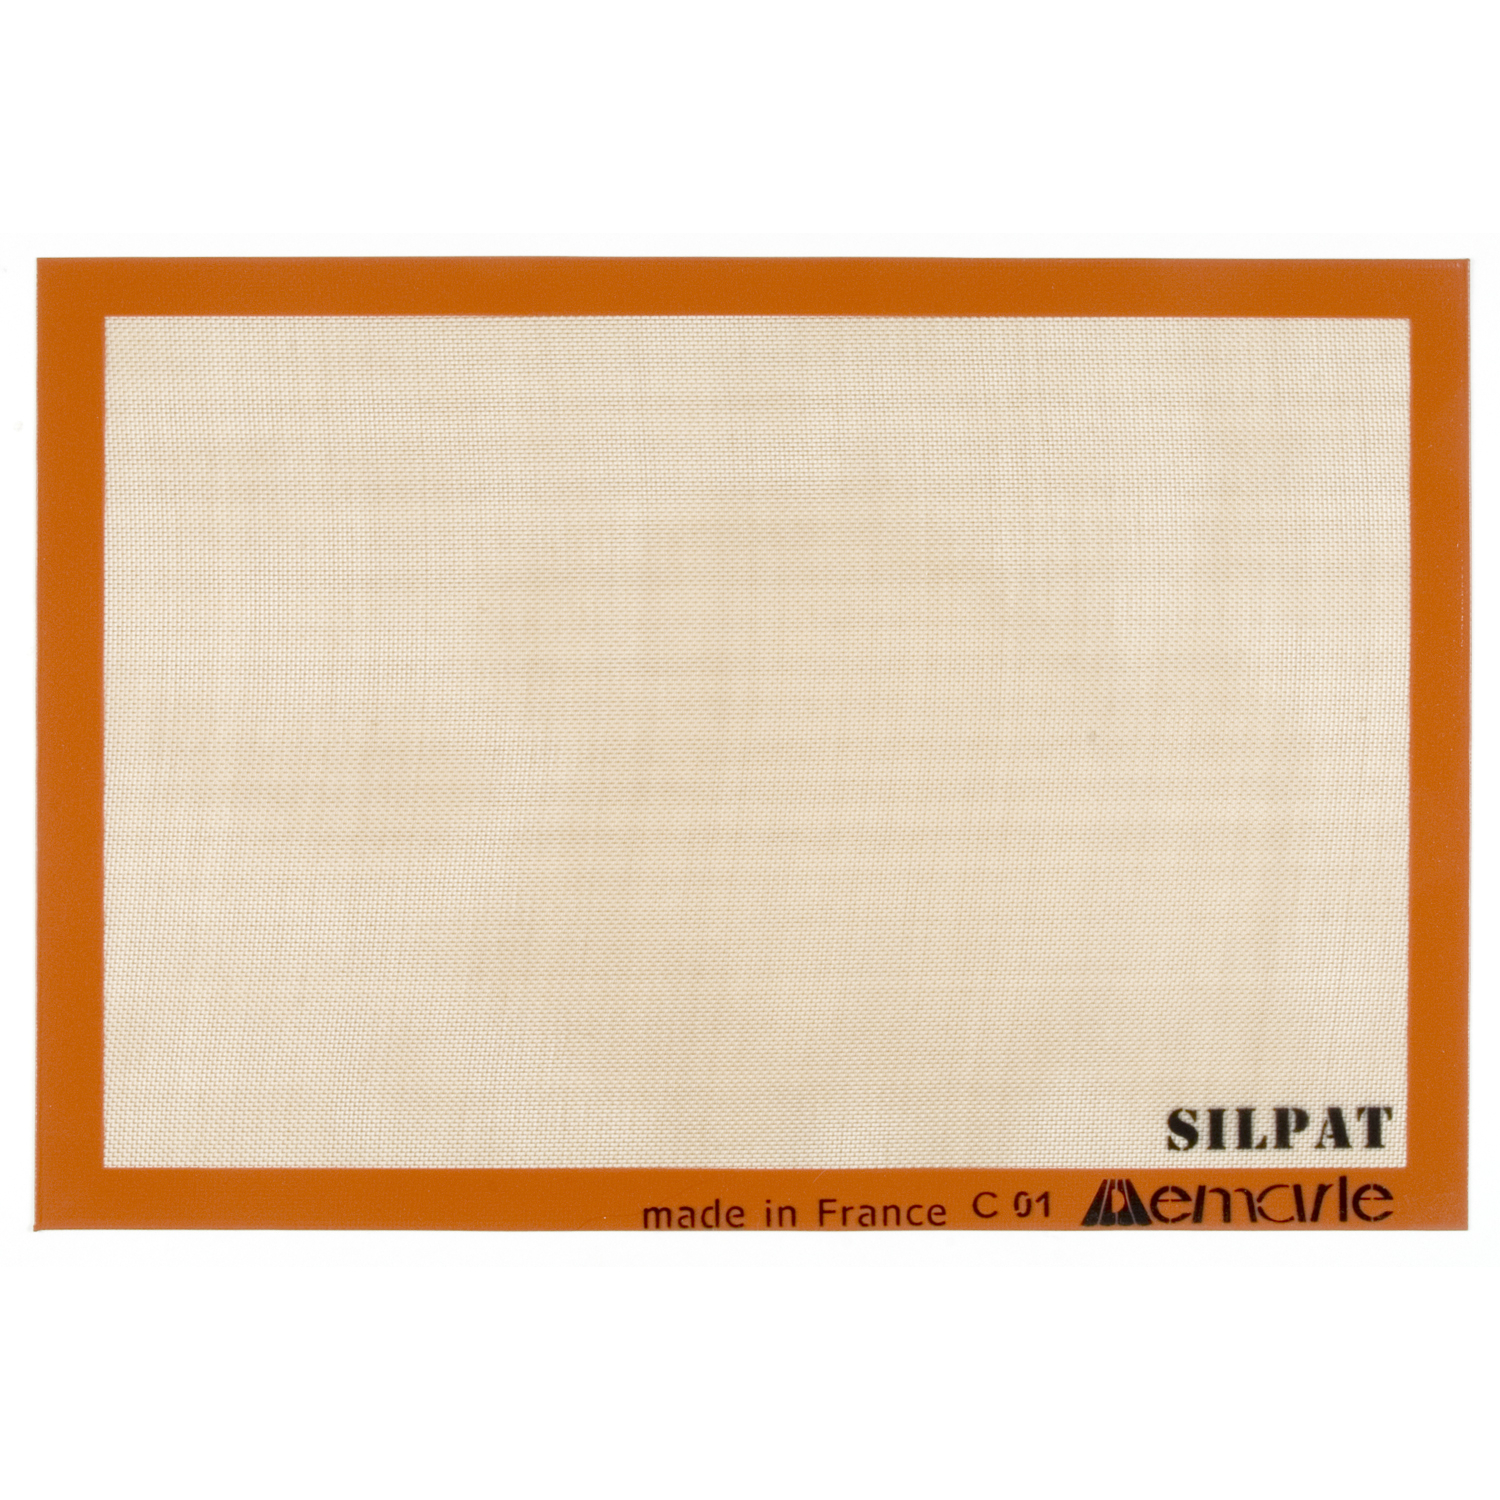 Silpat US Full Size 16.5 x 24.5 Inch Baking Mat